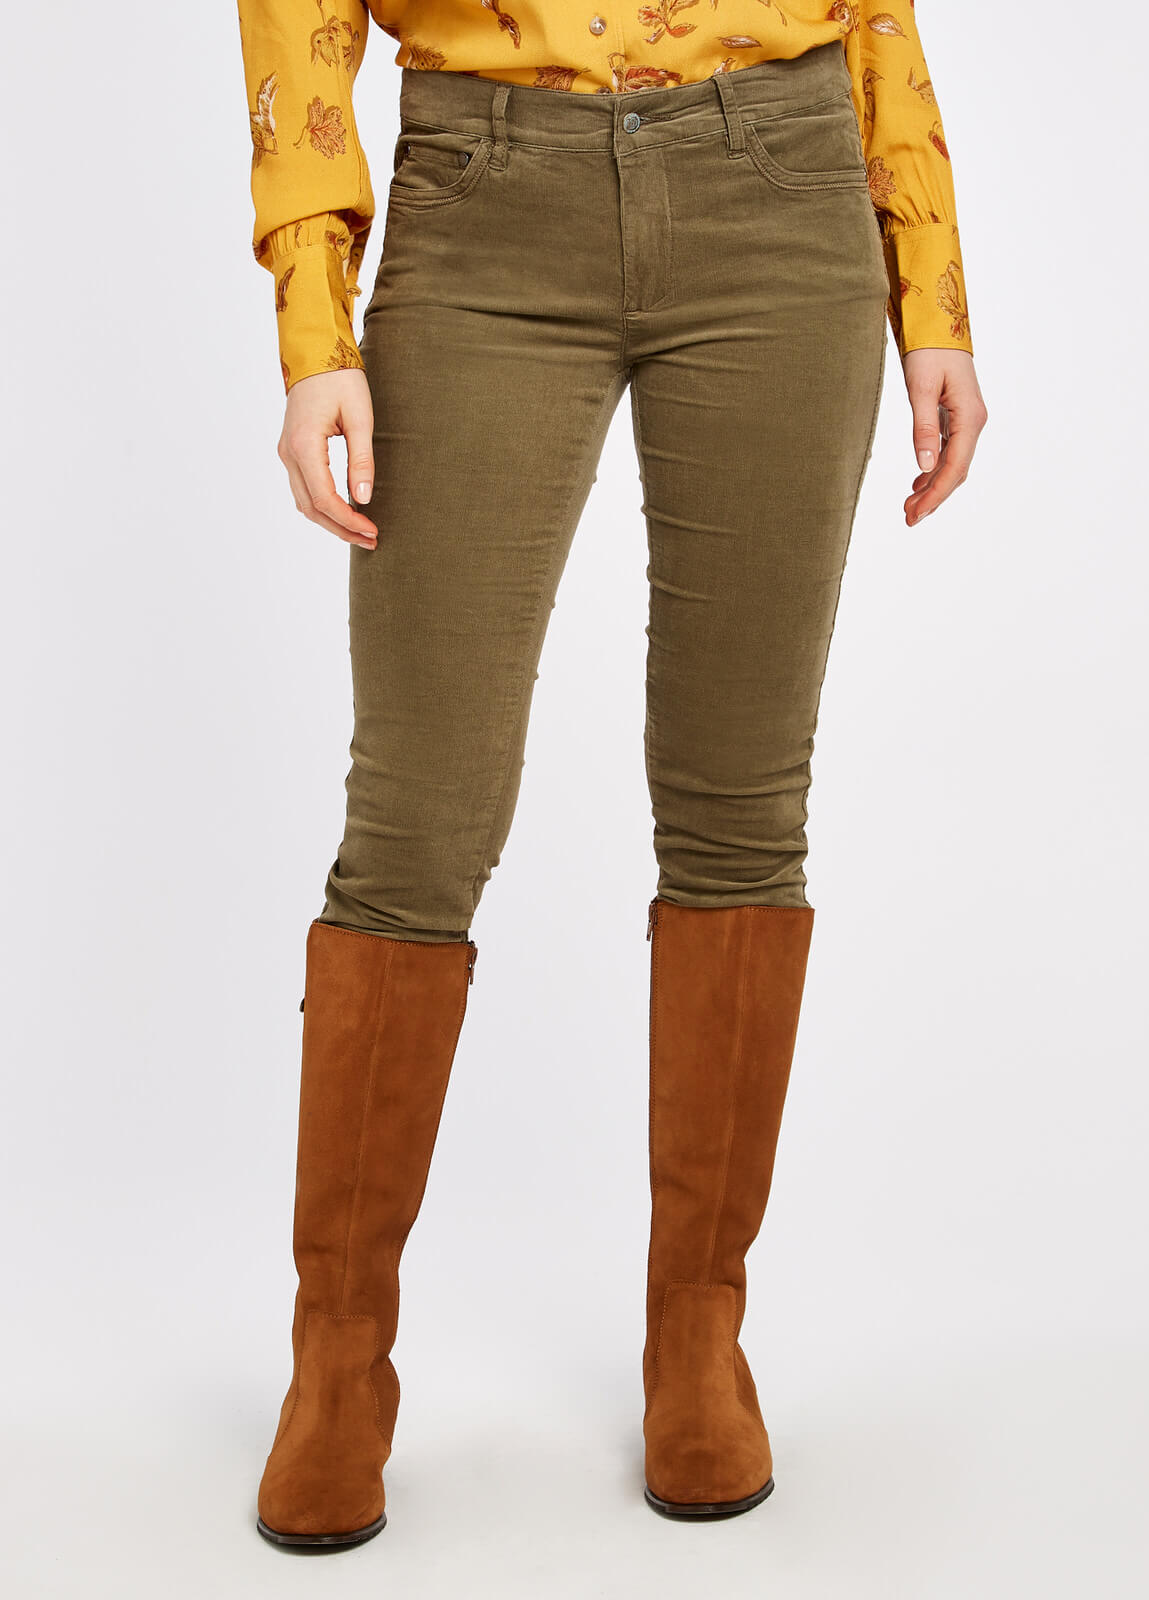 Honeysuckle Jeans - Dusky Green